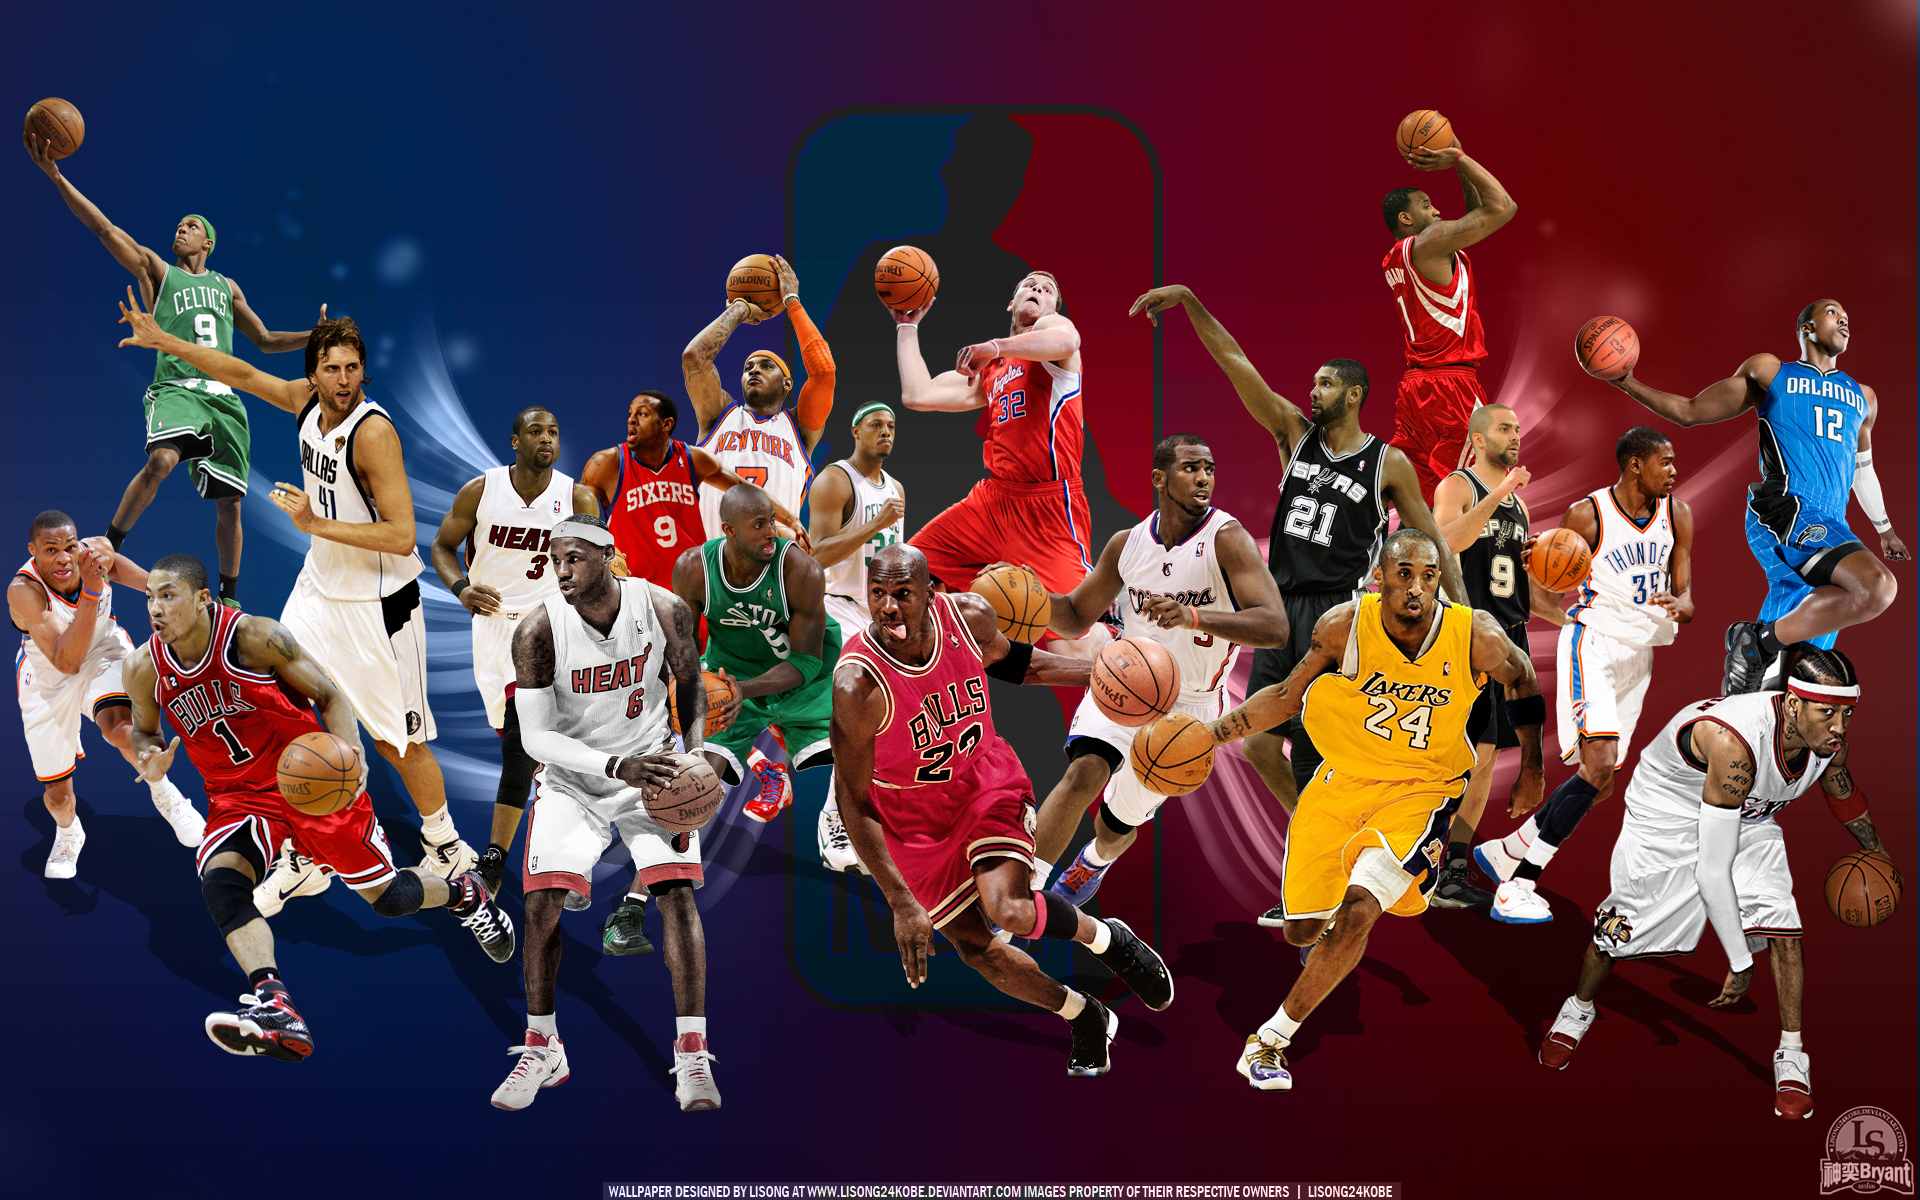 basketball wallpapers basketball wallpapers 2015 basketball wallpapers 1920x1200